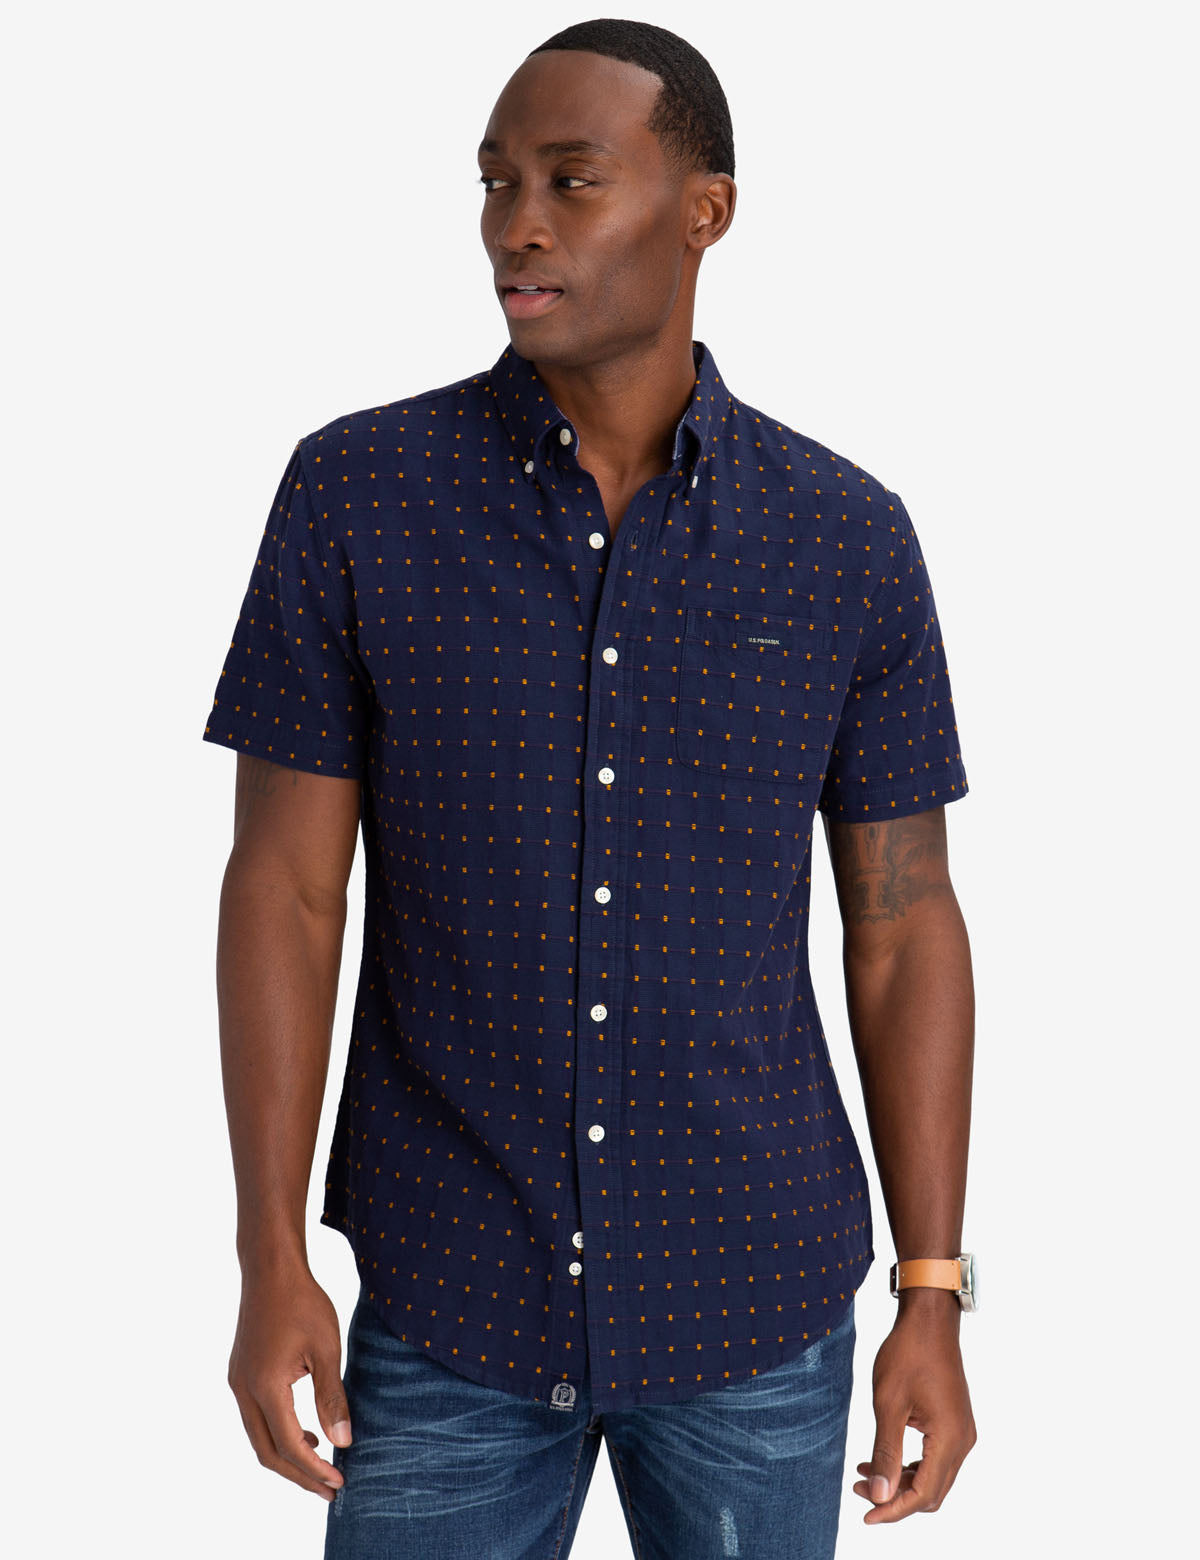 DOBBY  SHIRT - U.S. Polo Assn.